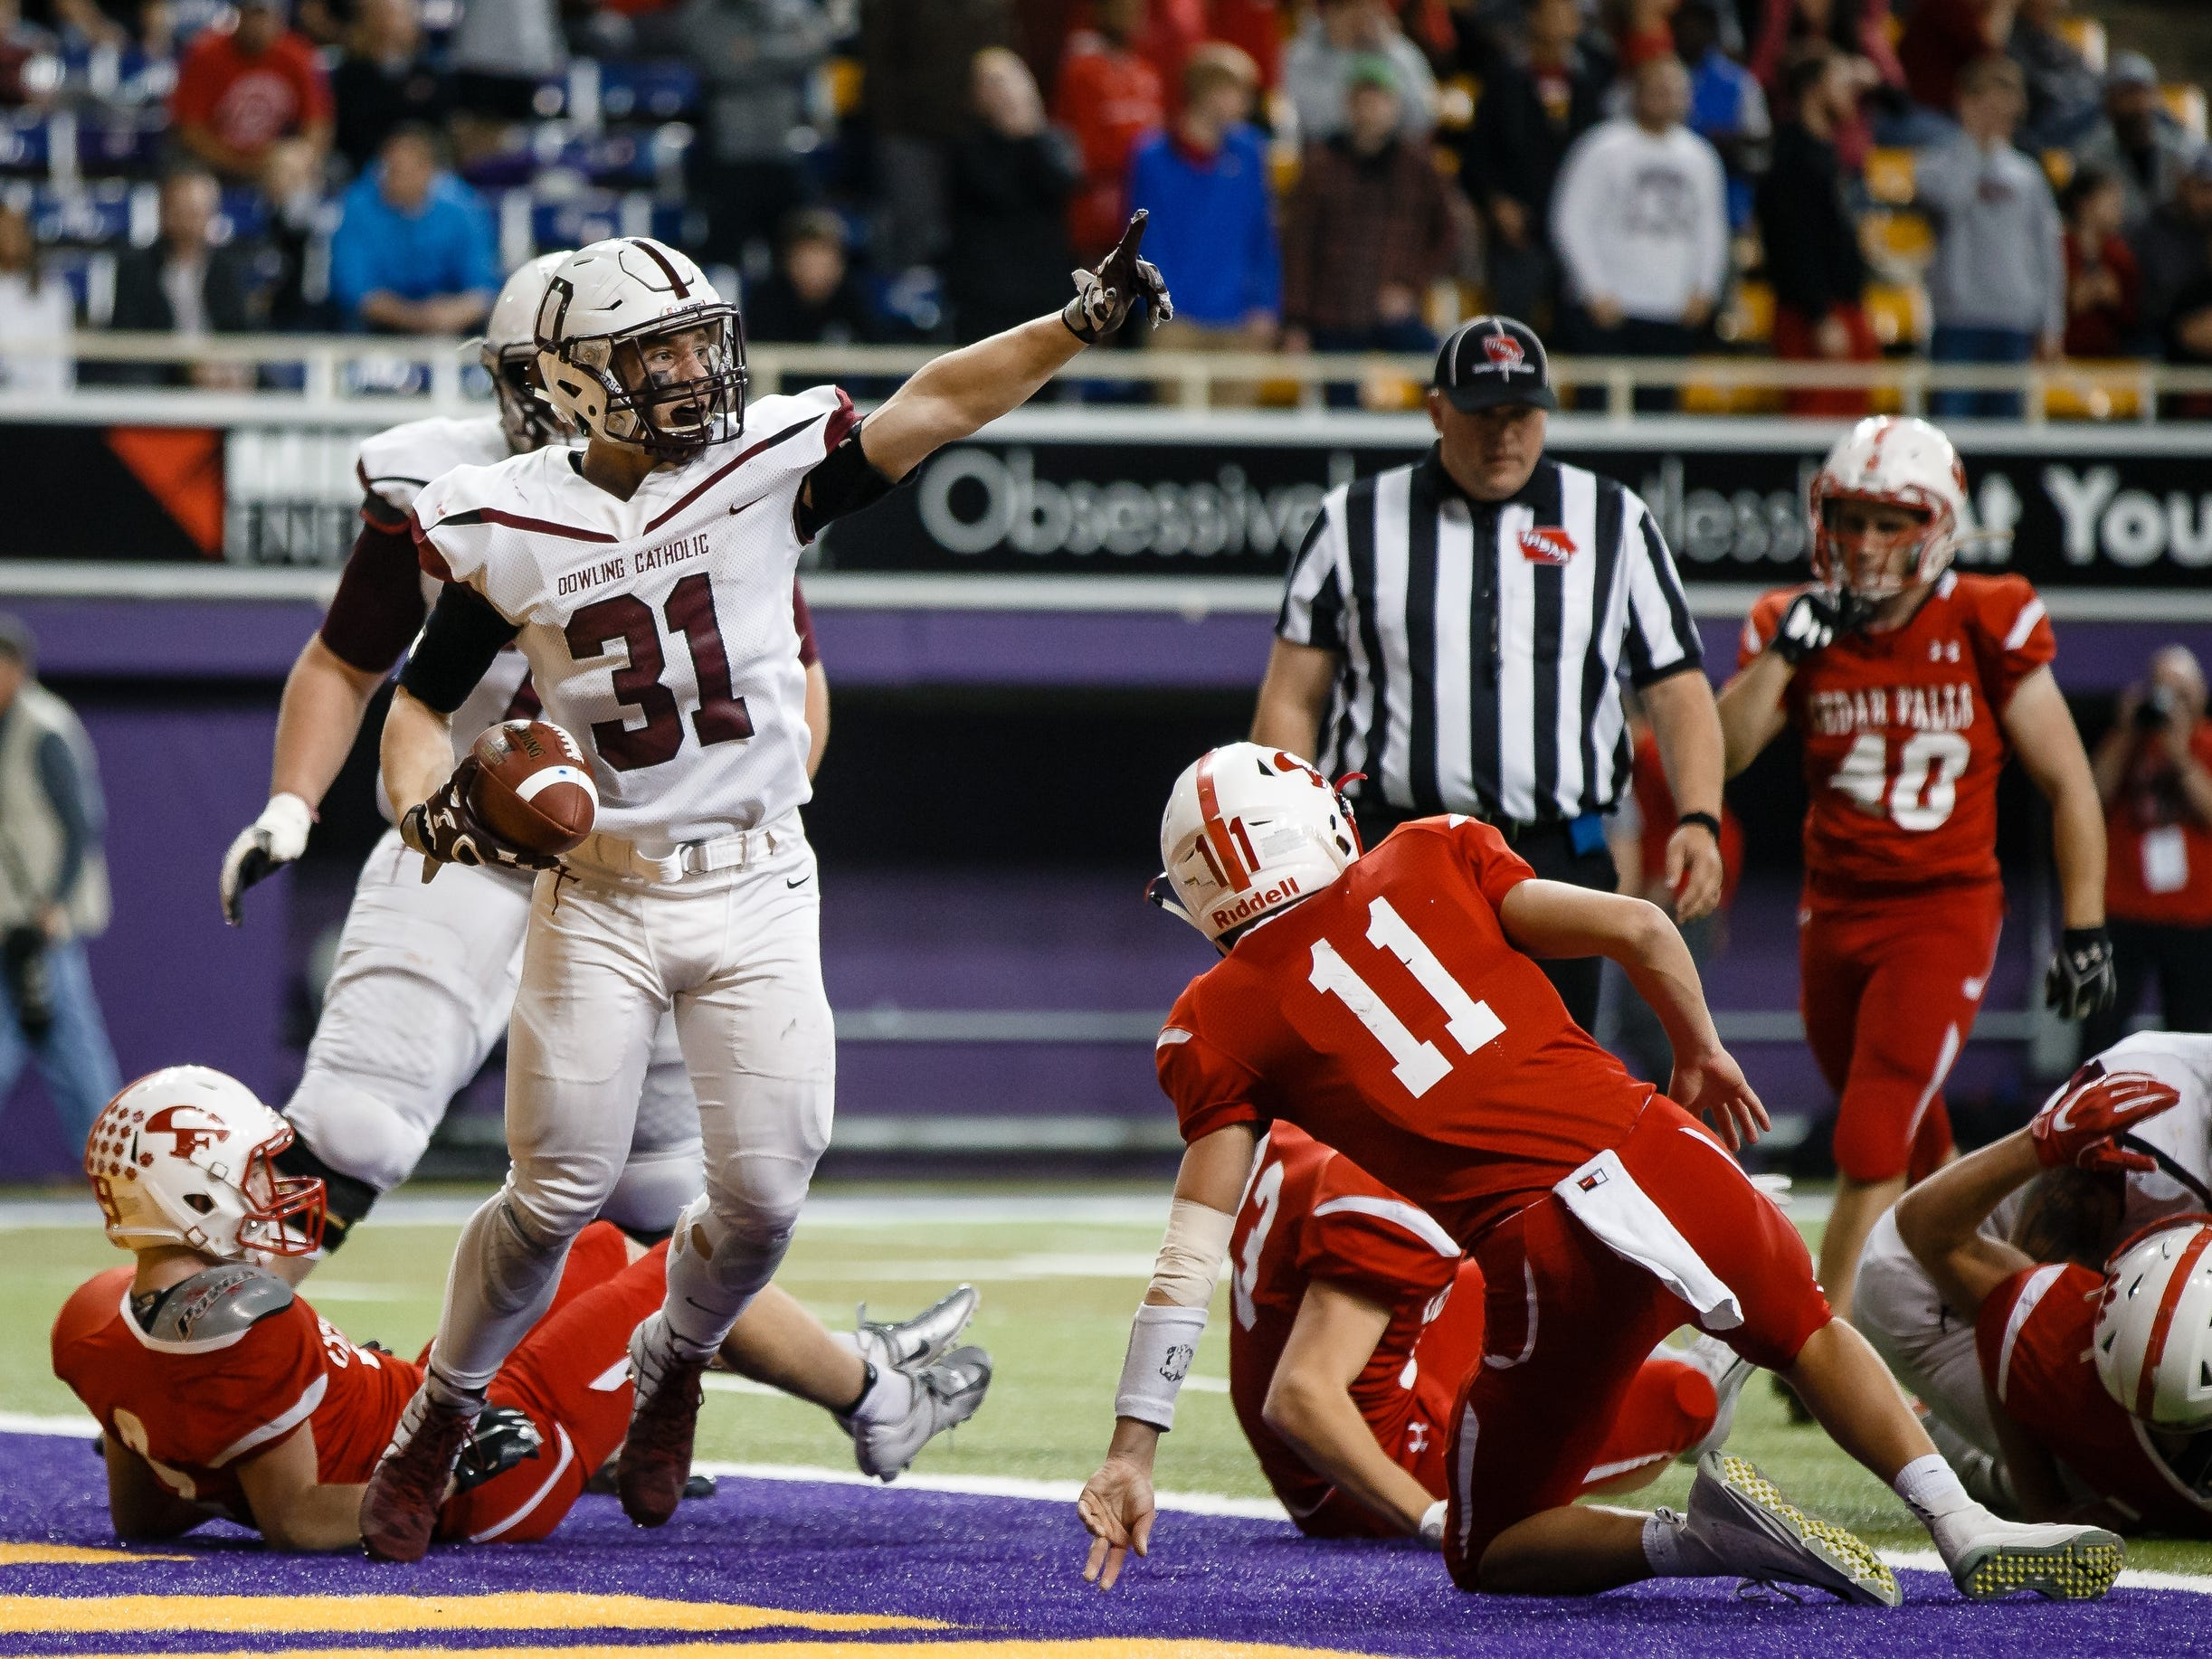 Dowling Catholic's Teagan Johnson (31) celebrates his touchdown making the score 13-16 during their class 4A state championship football game on Friday, Nov. 16, 2018, in Cedar Falls. Dowling Catholic would go on to defeat Cedar Falls 22-16 and win their sixth state title.